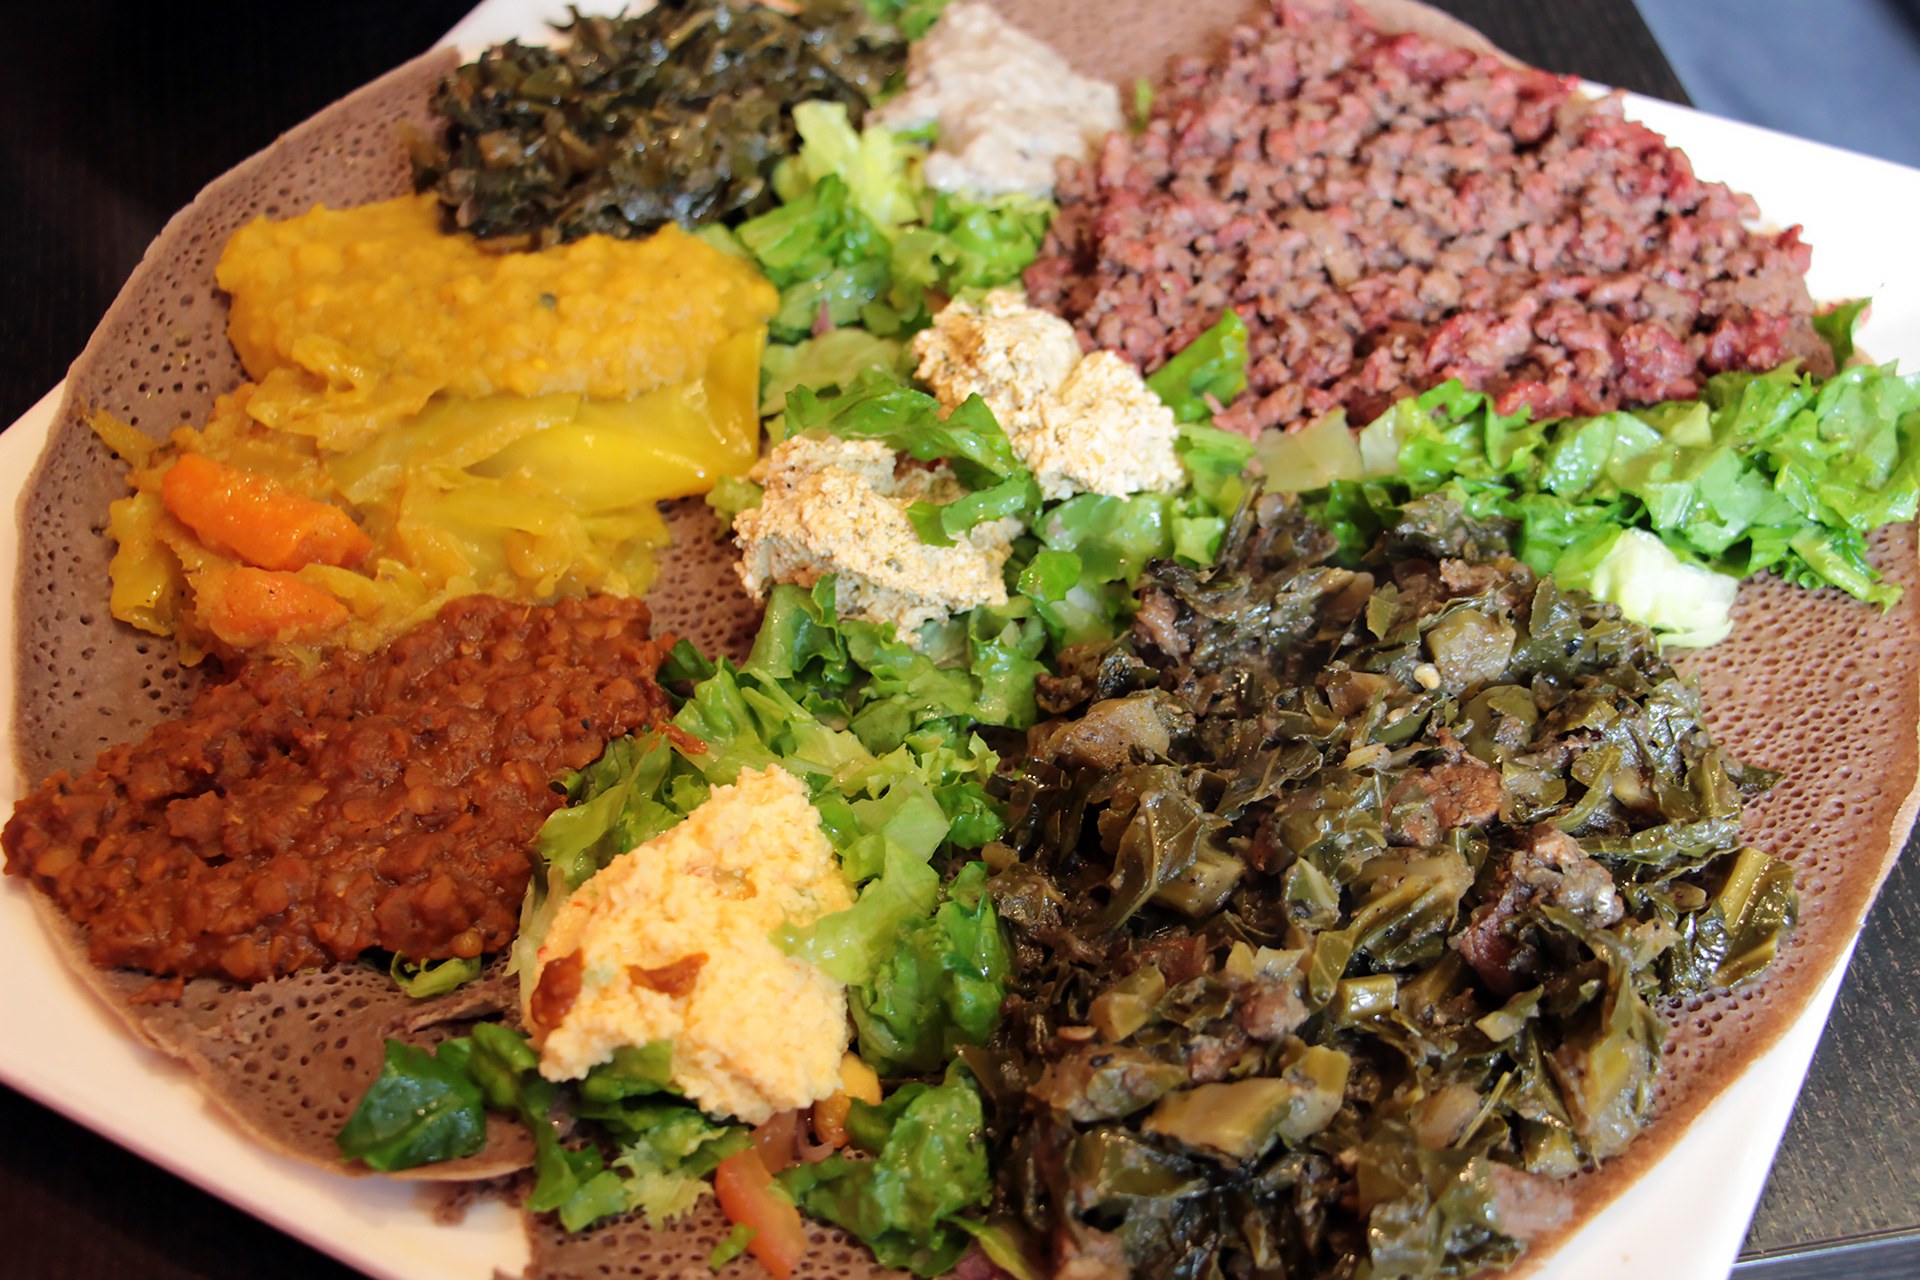 Combo platter: Vegetable dishes and Kitfo.